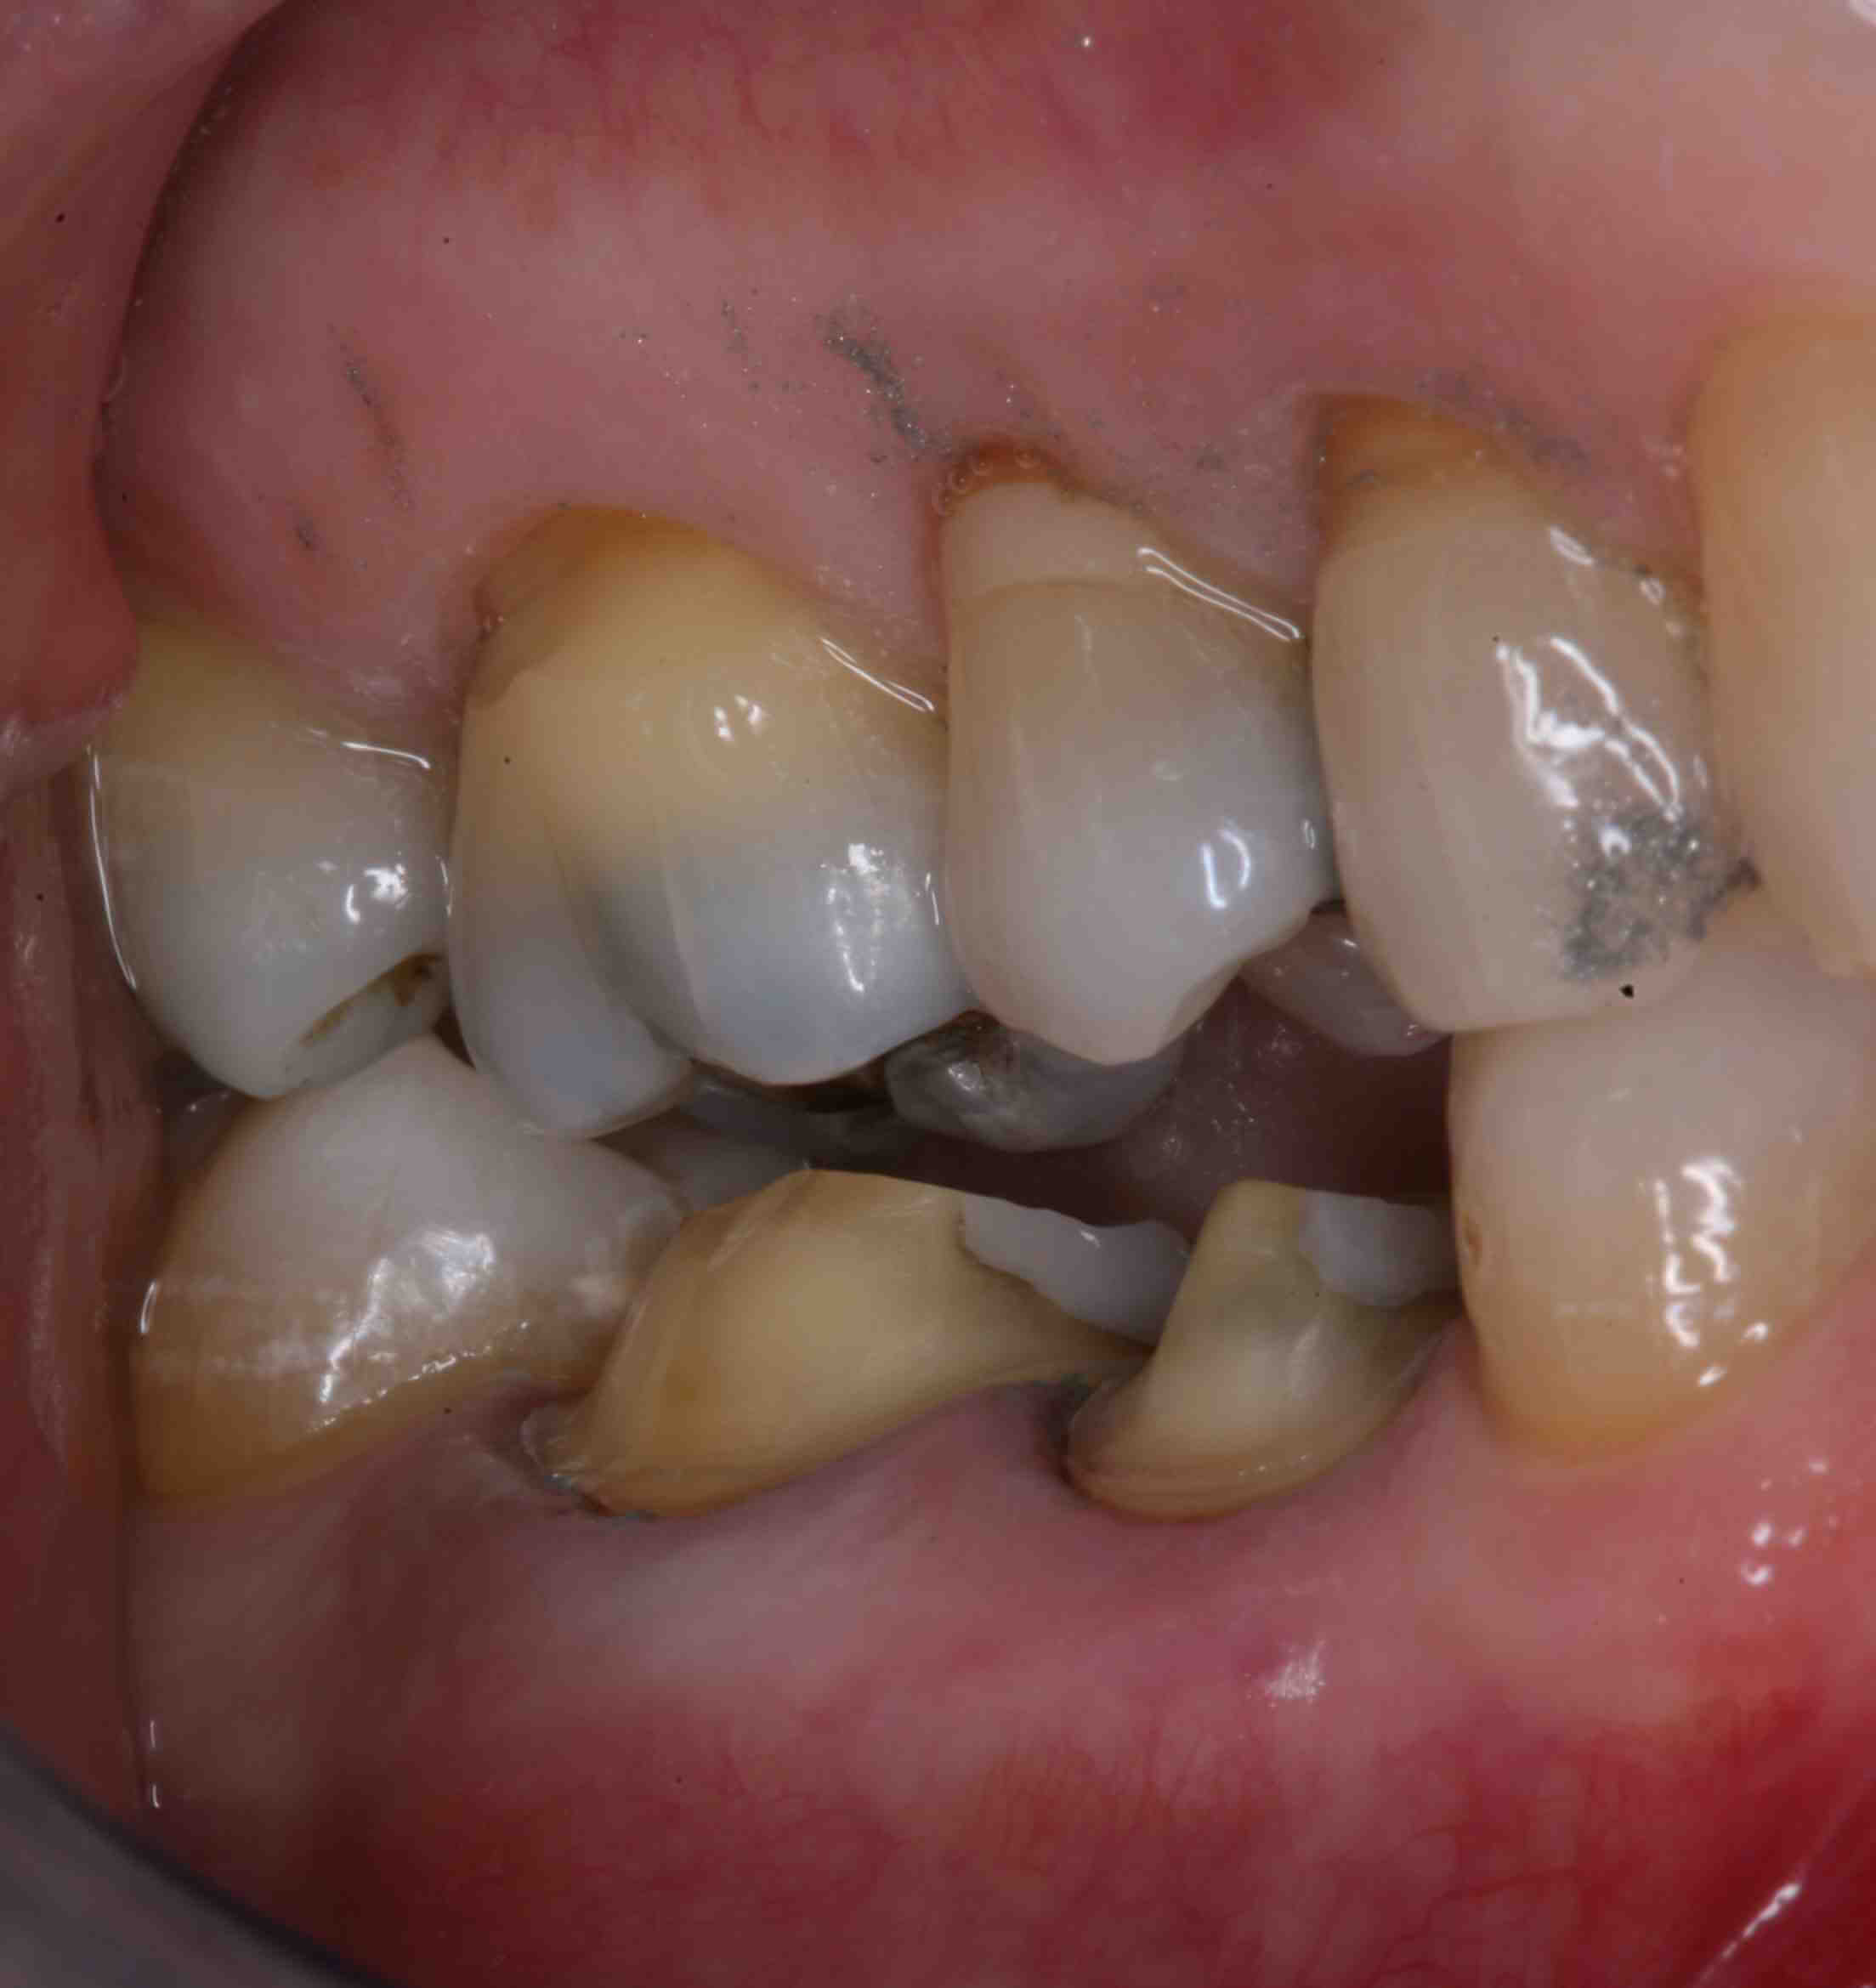 Occlusal Reduction: How Much is Enough